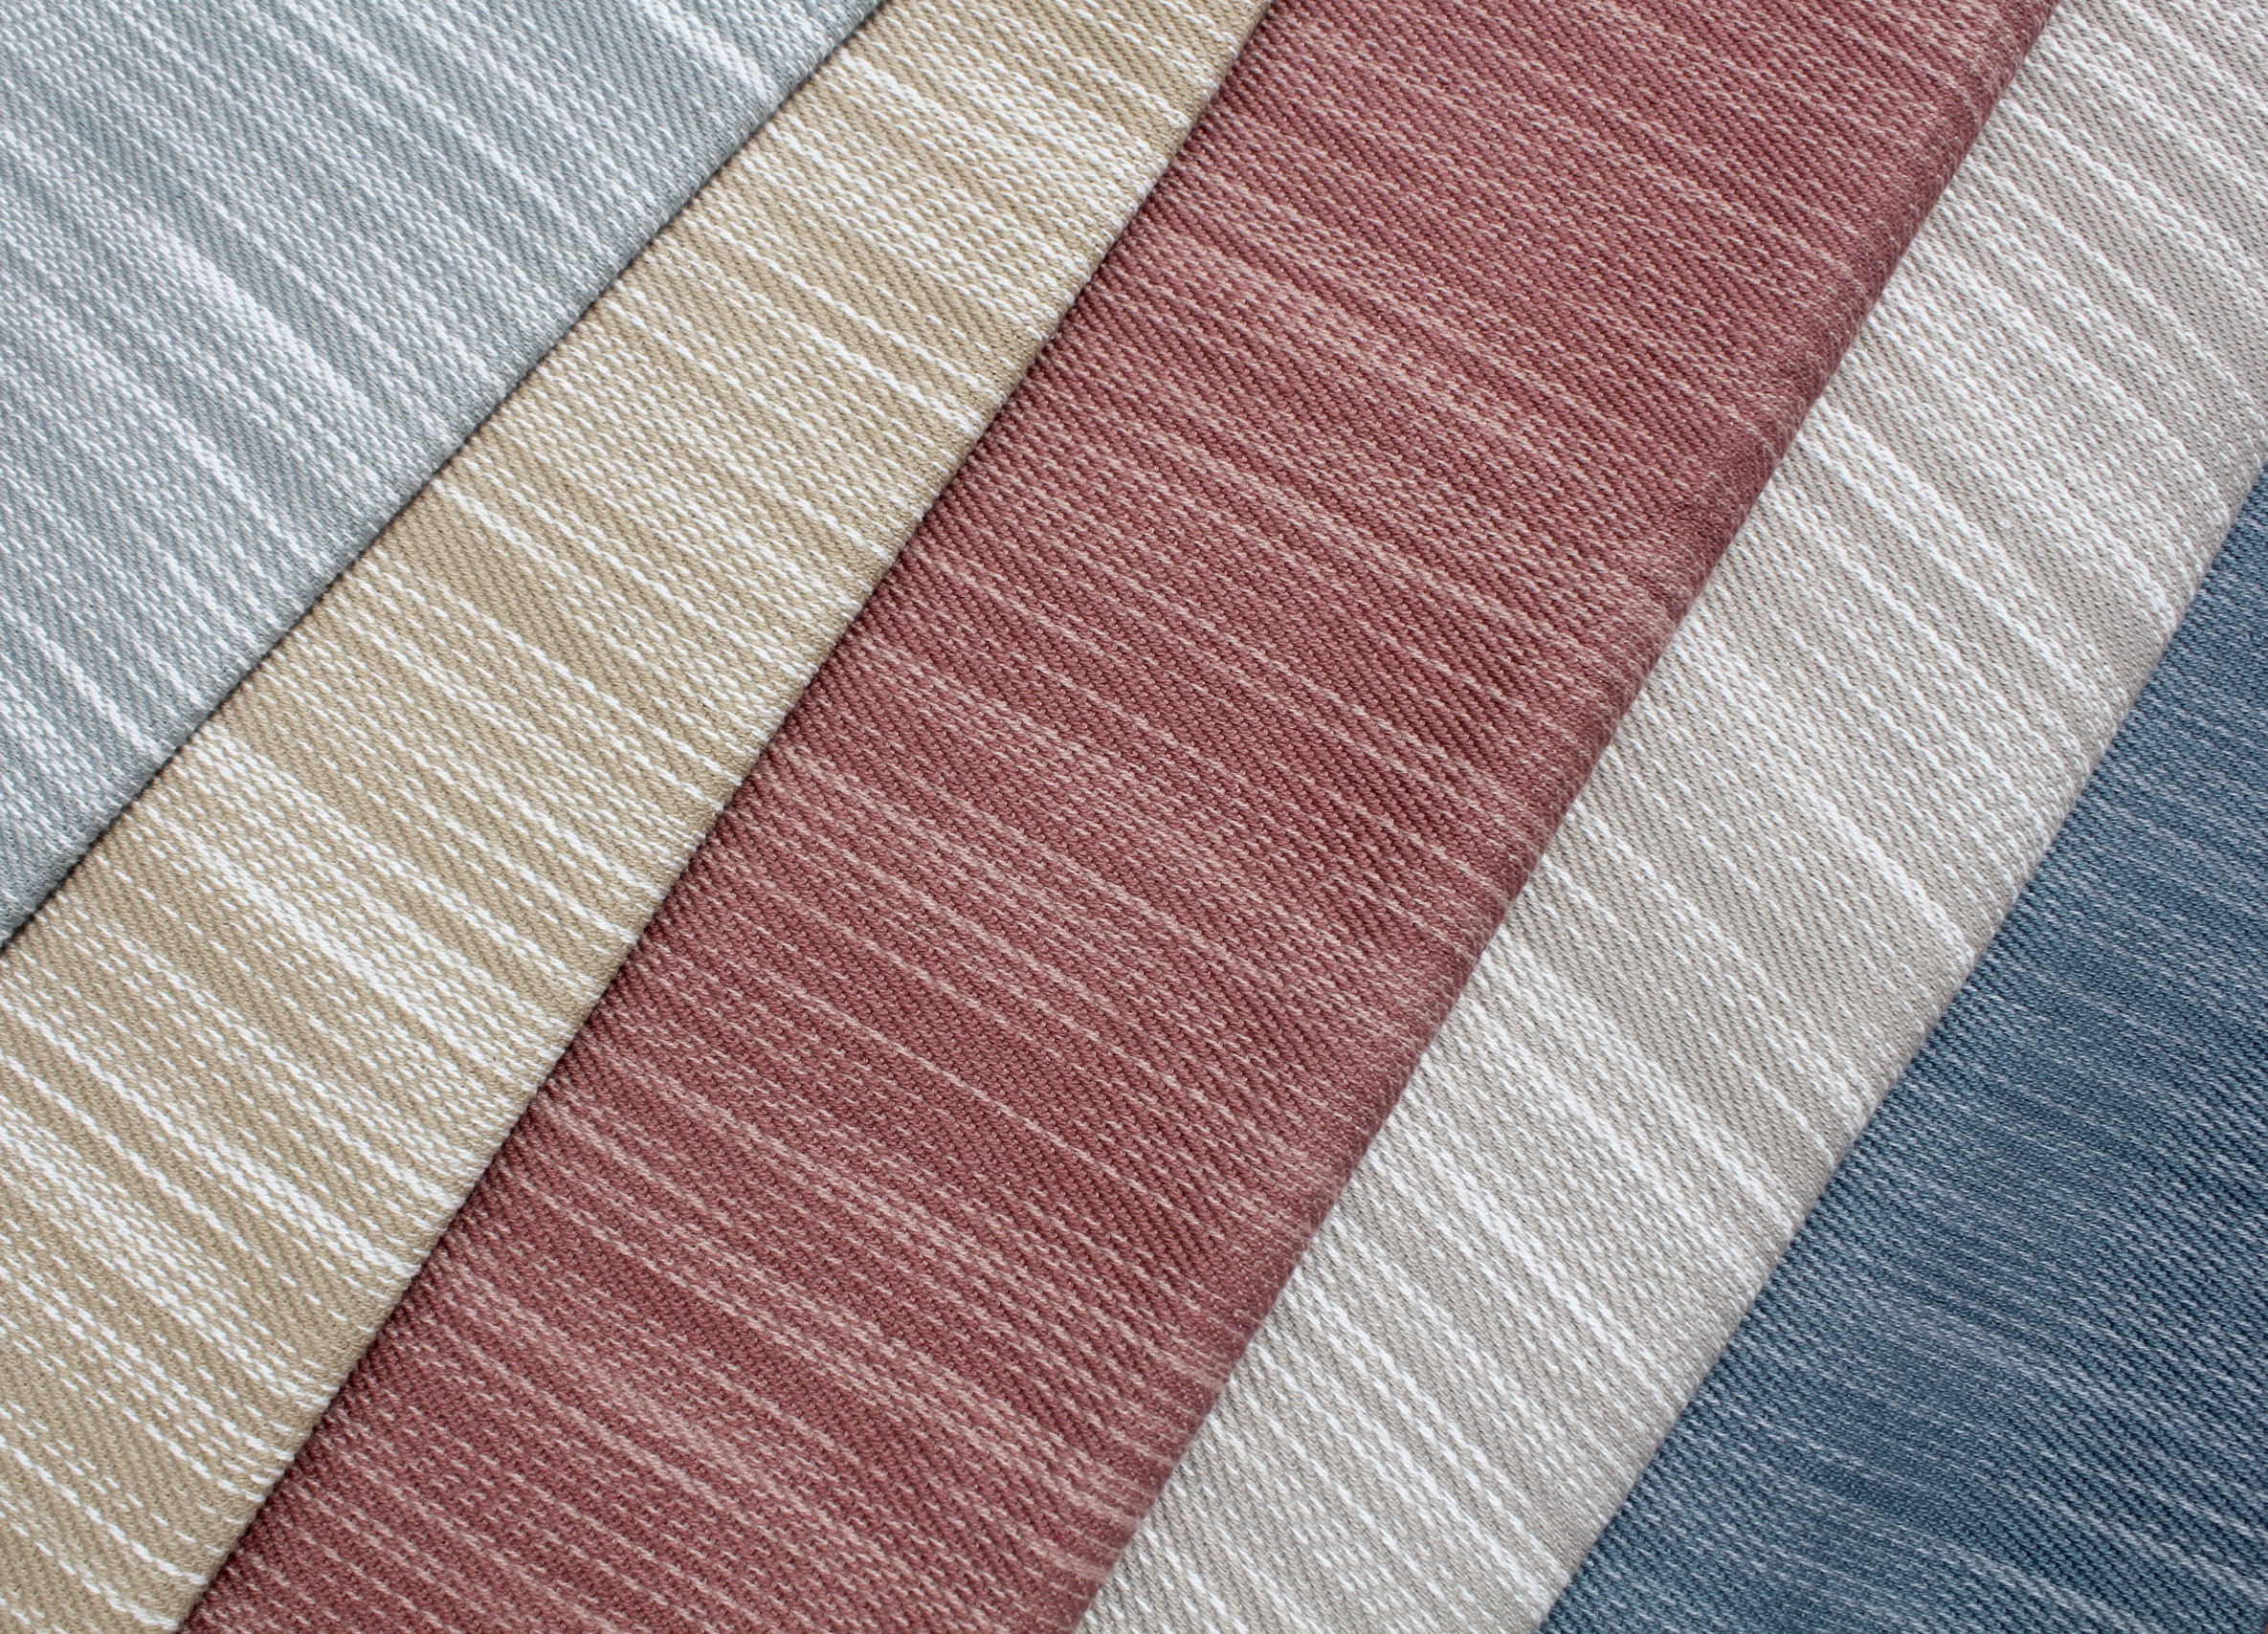 Quarry  A textured woven strie in 5 nature-inspired colorways.